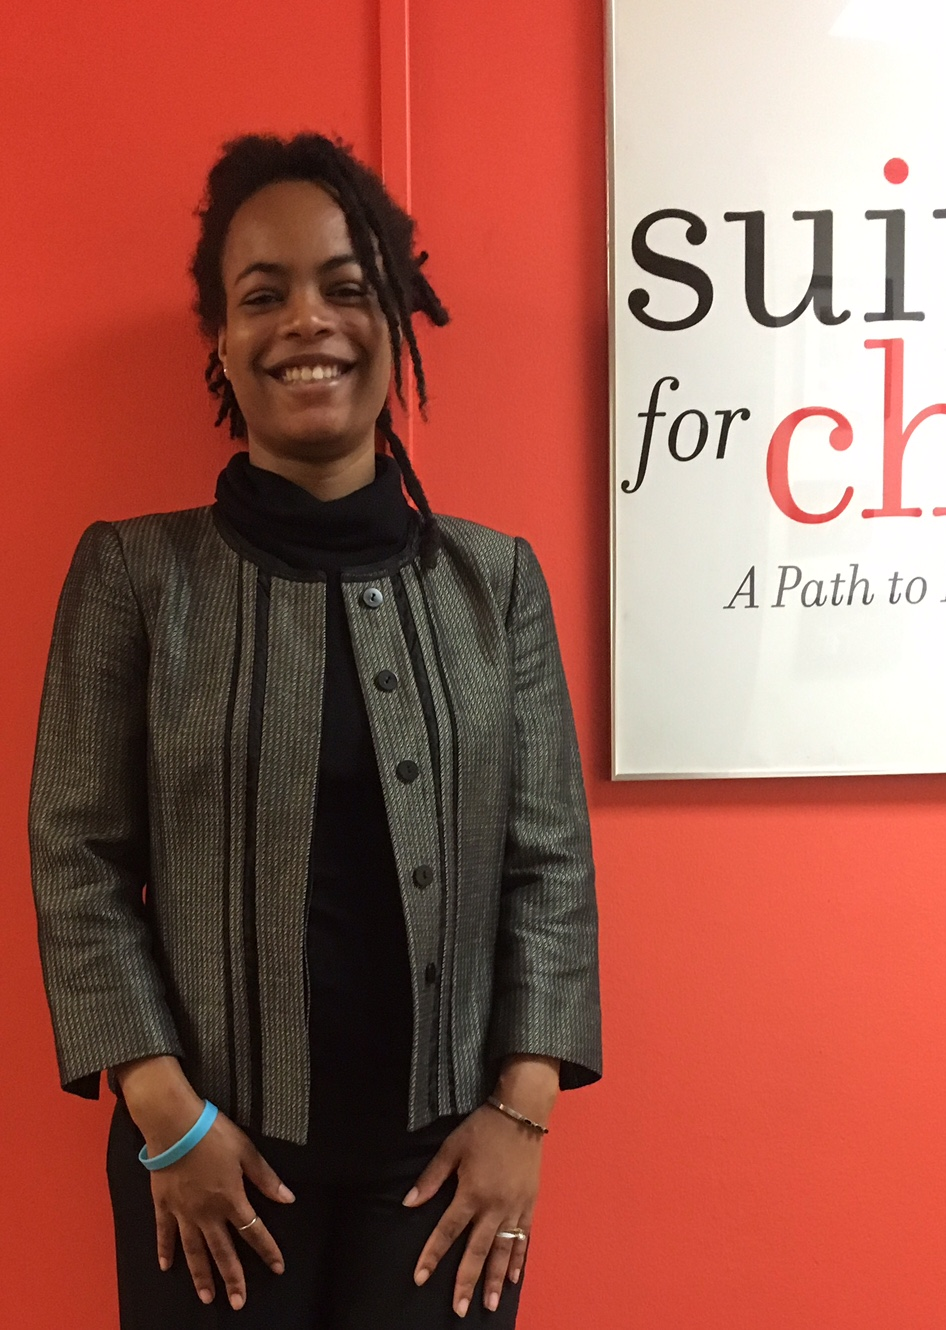 Client at Suited for Change (Washington, D.C.)